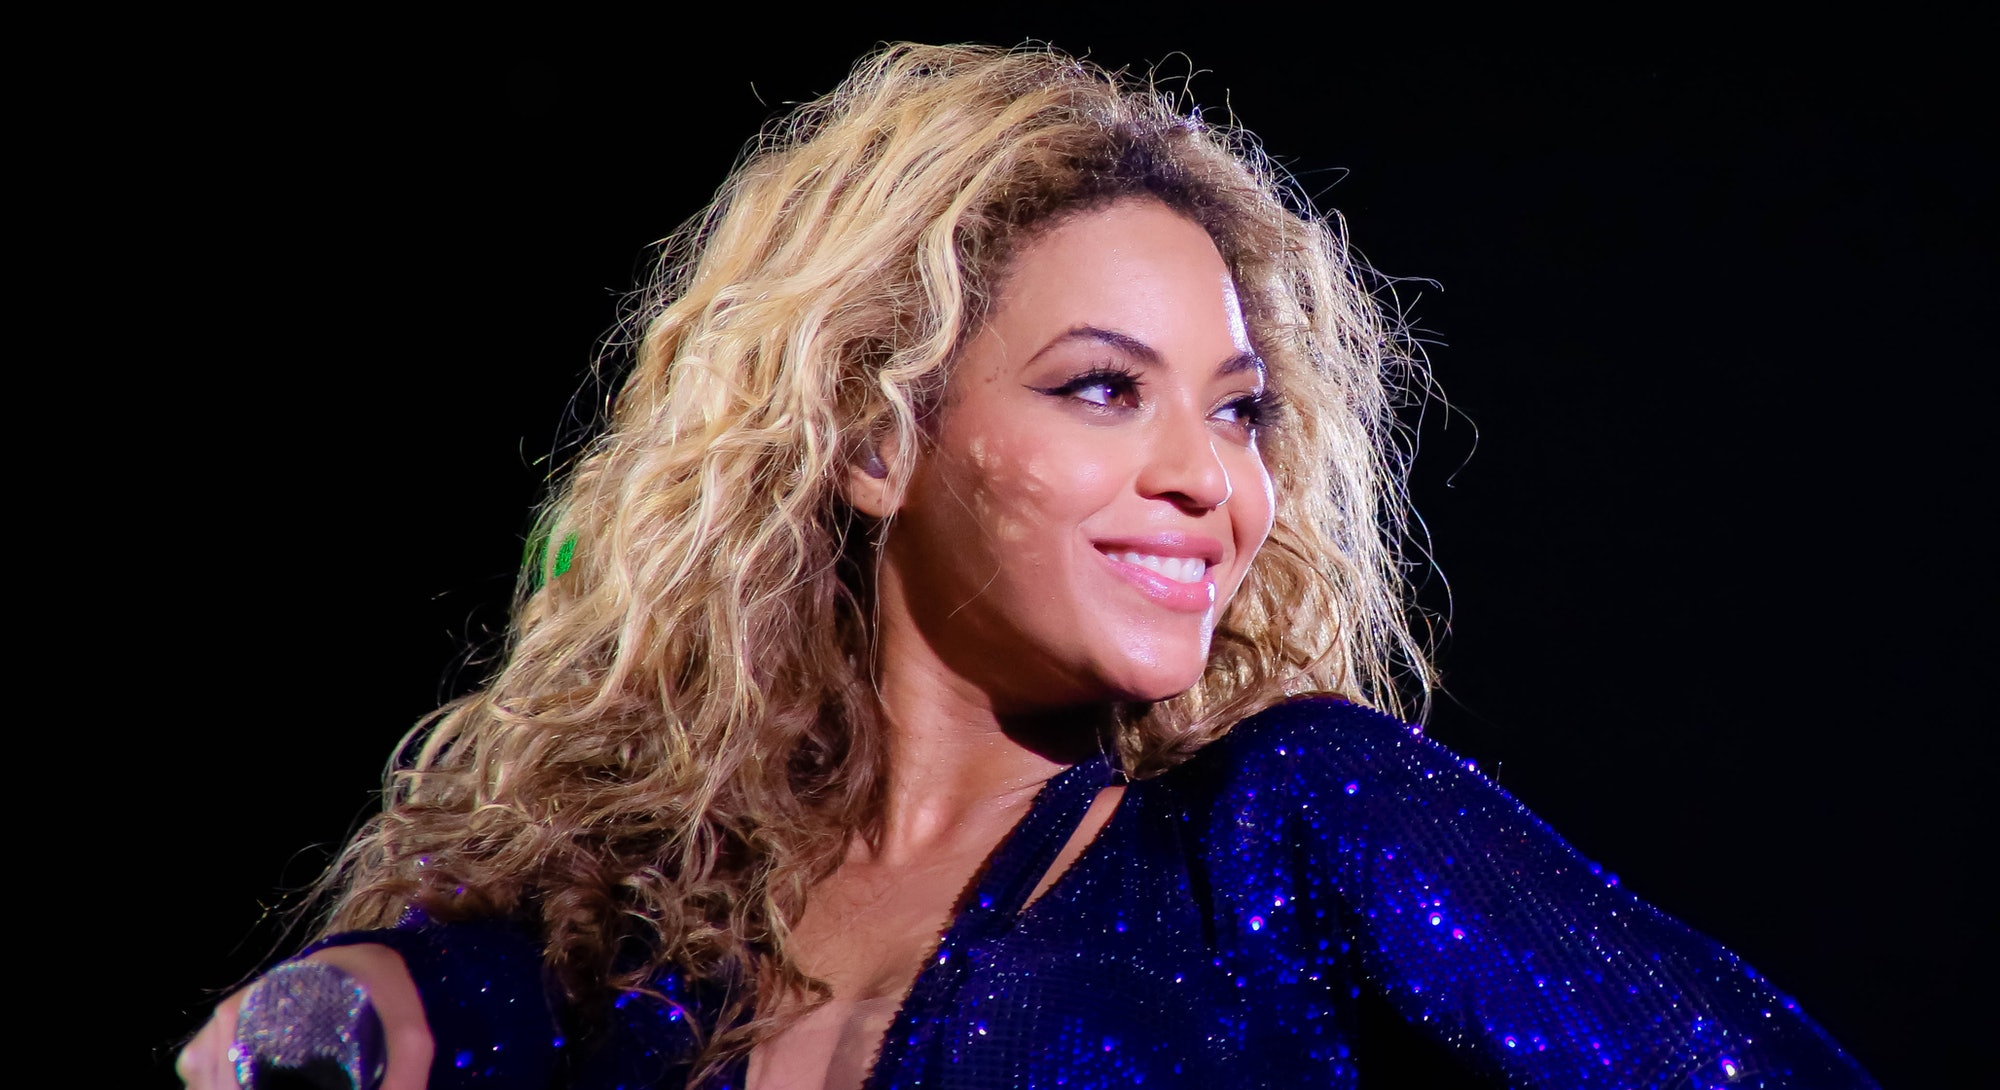 Beyoncé is the mother of Blue Ivy, 9, Sir, 3, and Rumi Carter, 3.